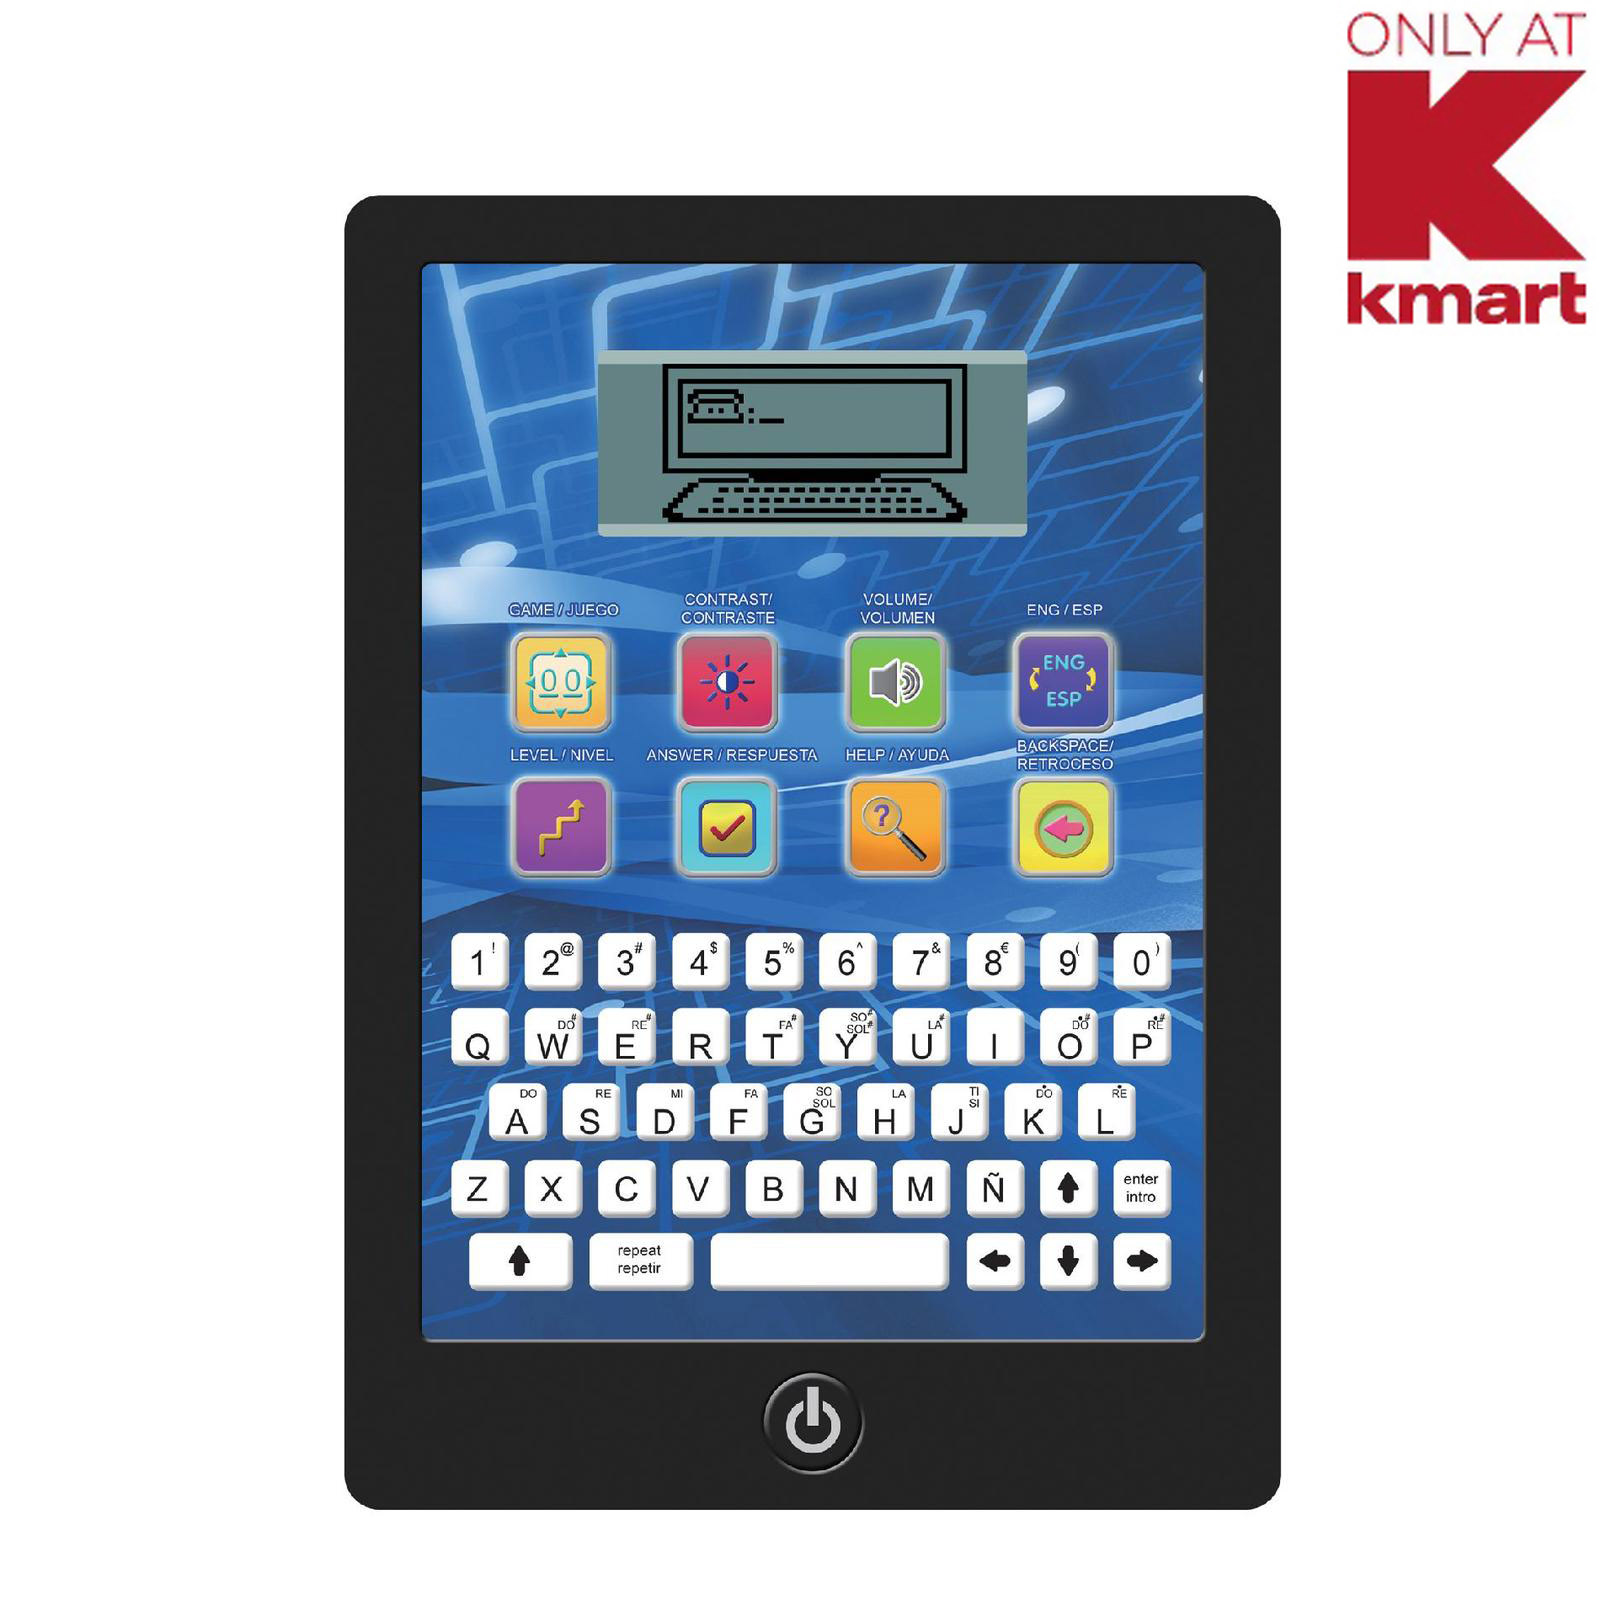 Just Kidz Educational Electronic LCD Learning Pad PartNumber: 004W003208263001P KsnValue: 3208263 MfgPartNumber: 8168K-01